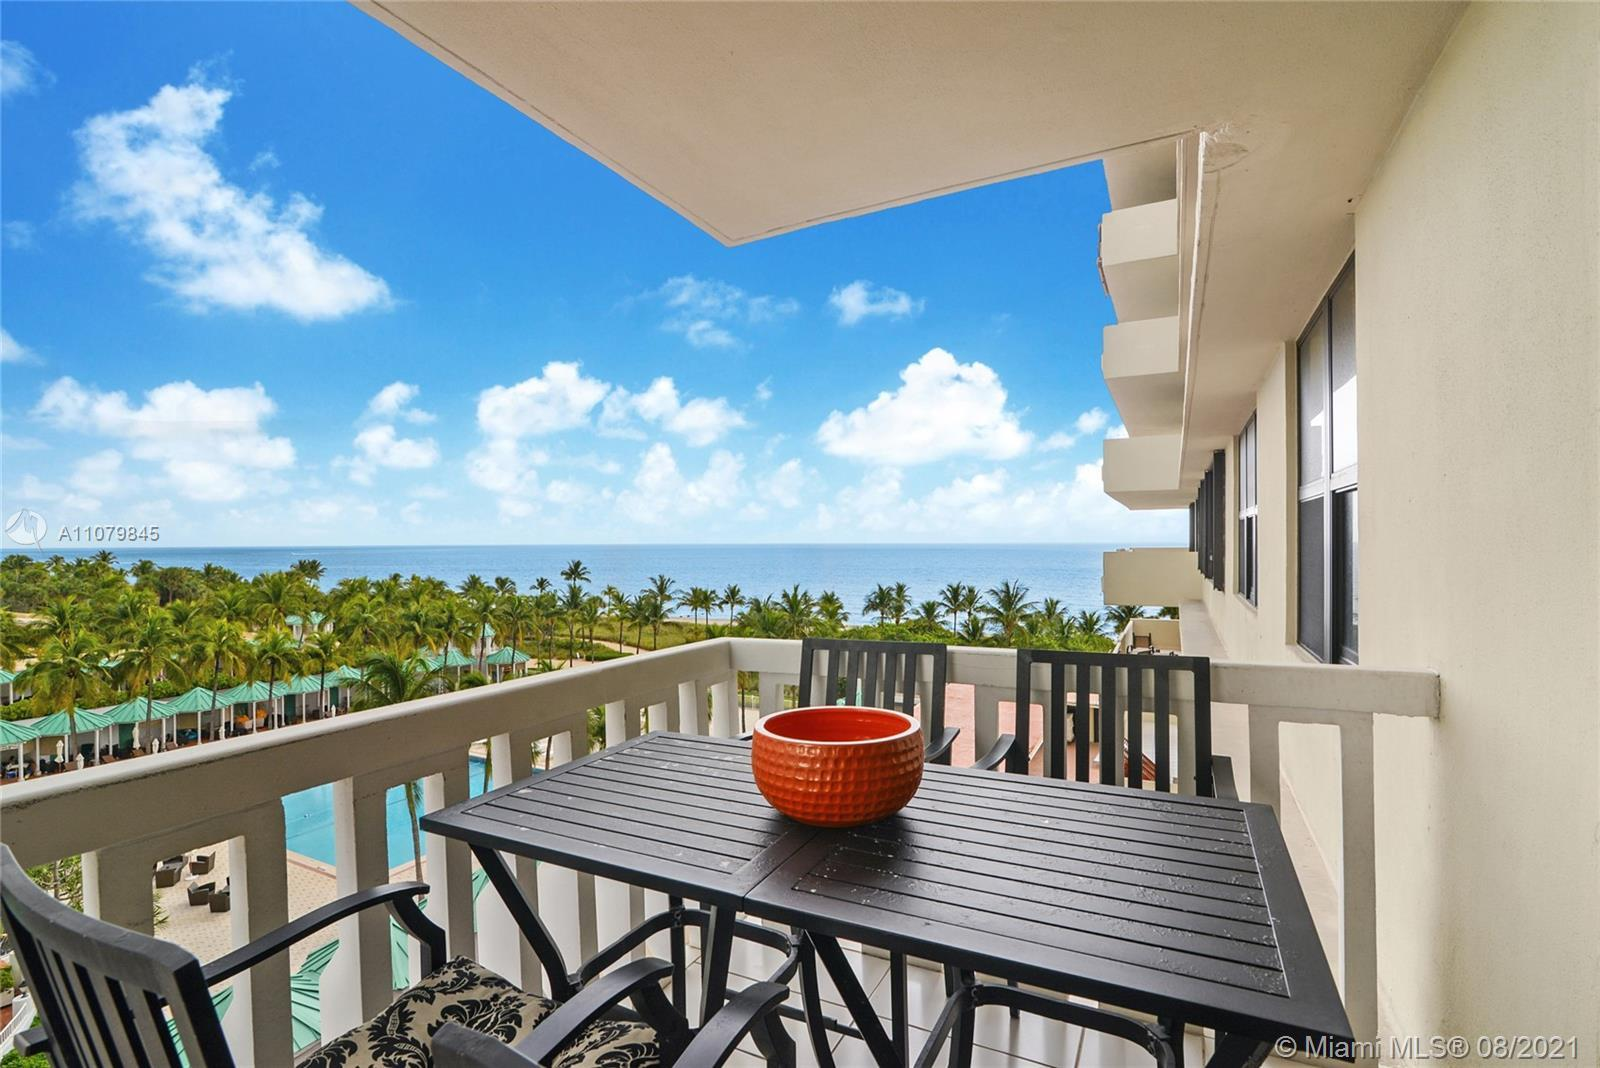 Balmoral Condo at Bal Harbour, Florida. Unit 7C substantially remodeled. Ocean views from all rooms.